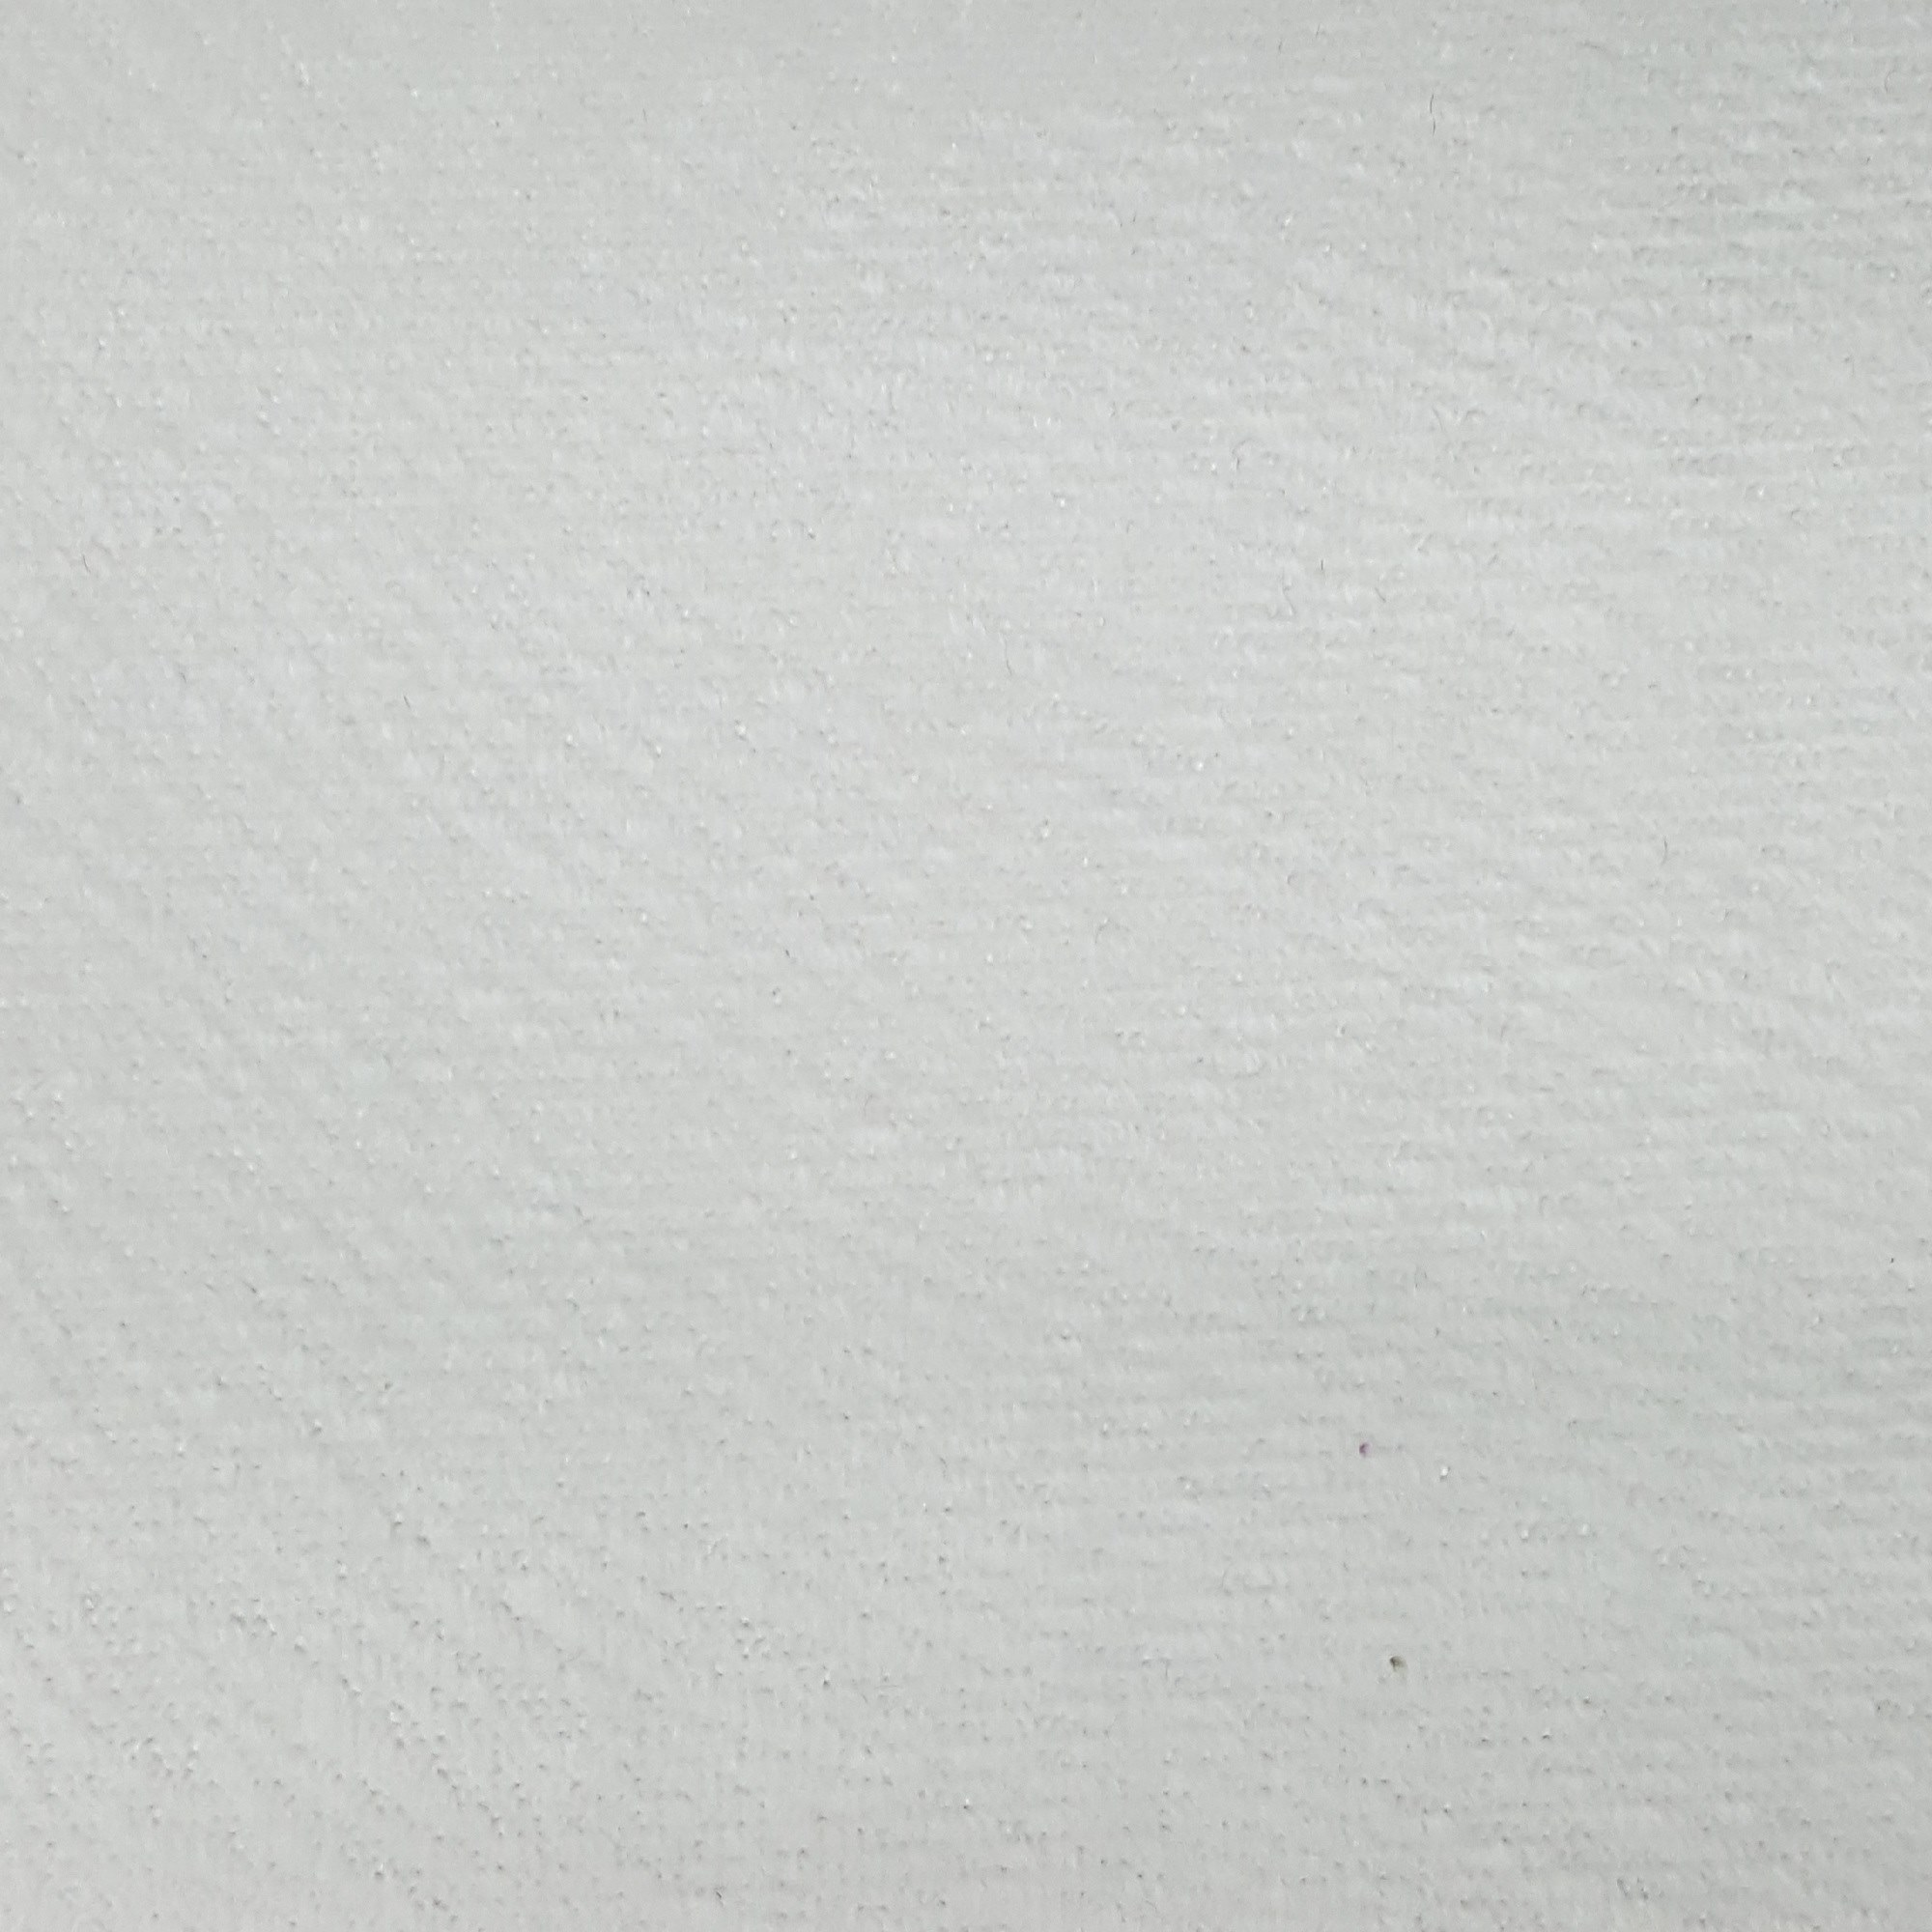 White Sofa Fabric Texture